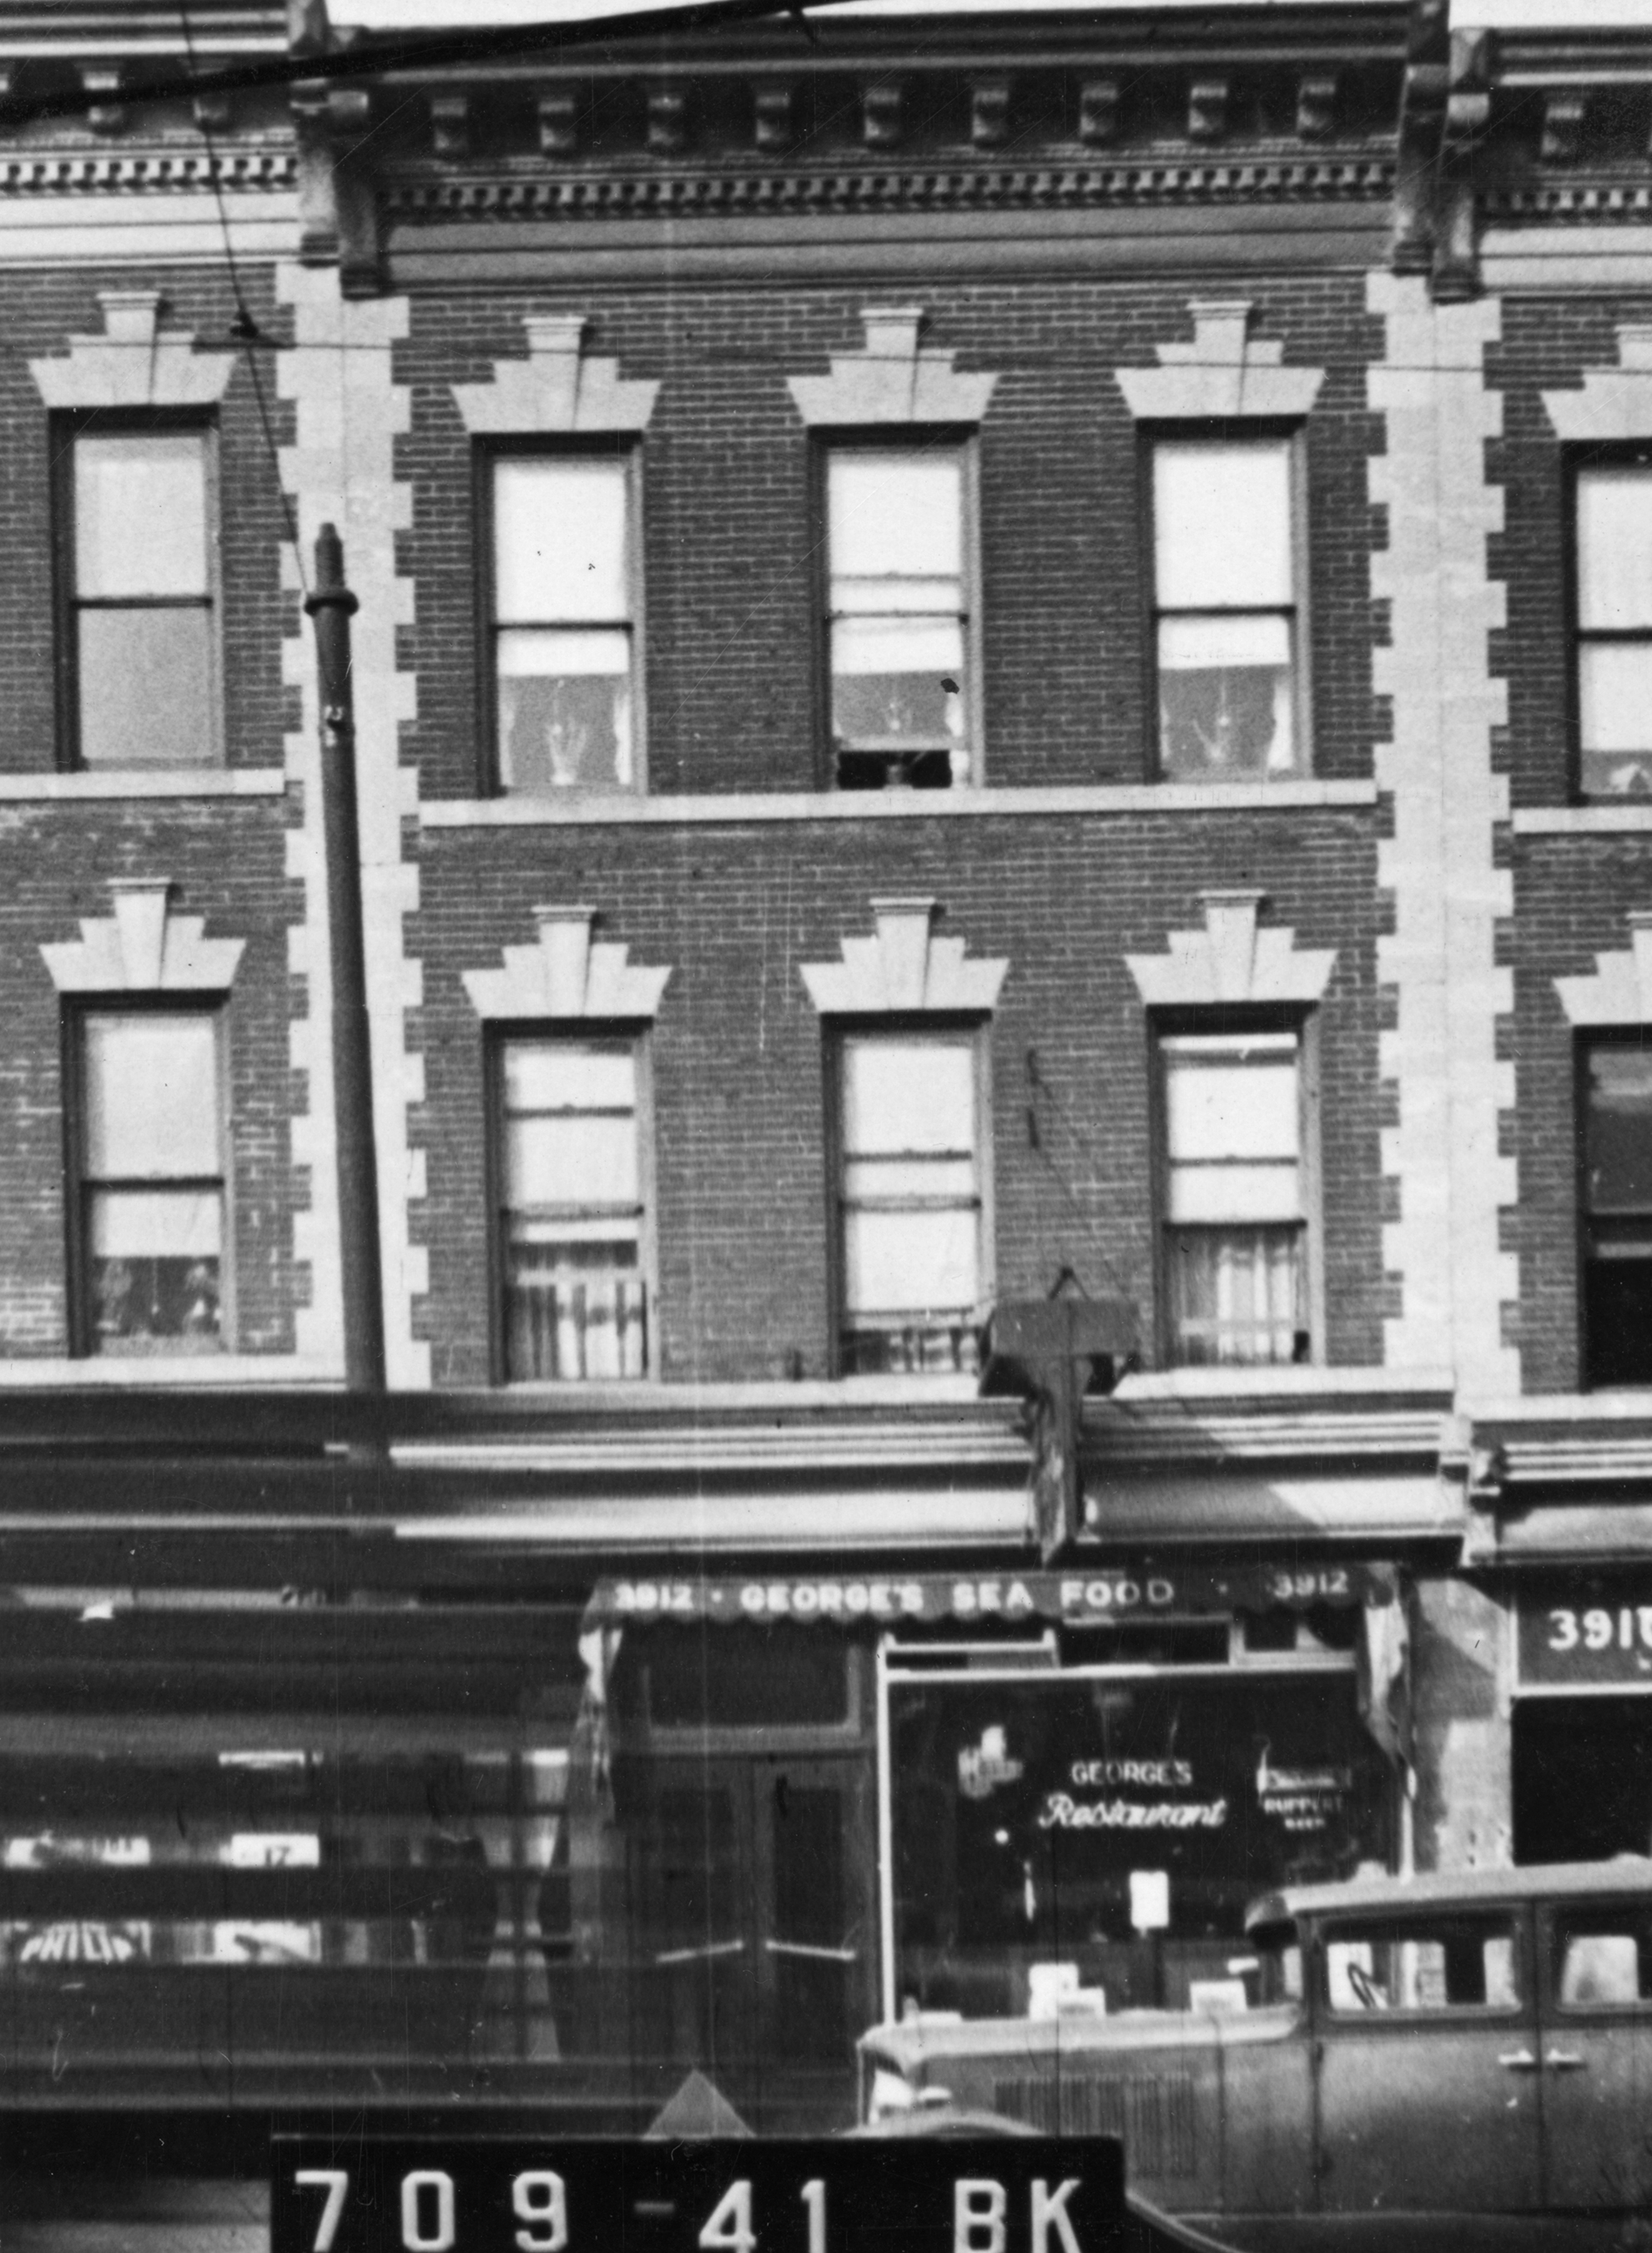 3912 5th Avenue, Brooklyn, NY, circa 1940.Department of Finance Collection, NYC Municipal Archives.